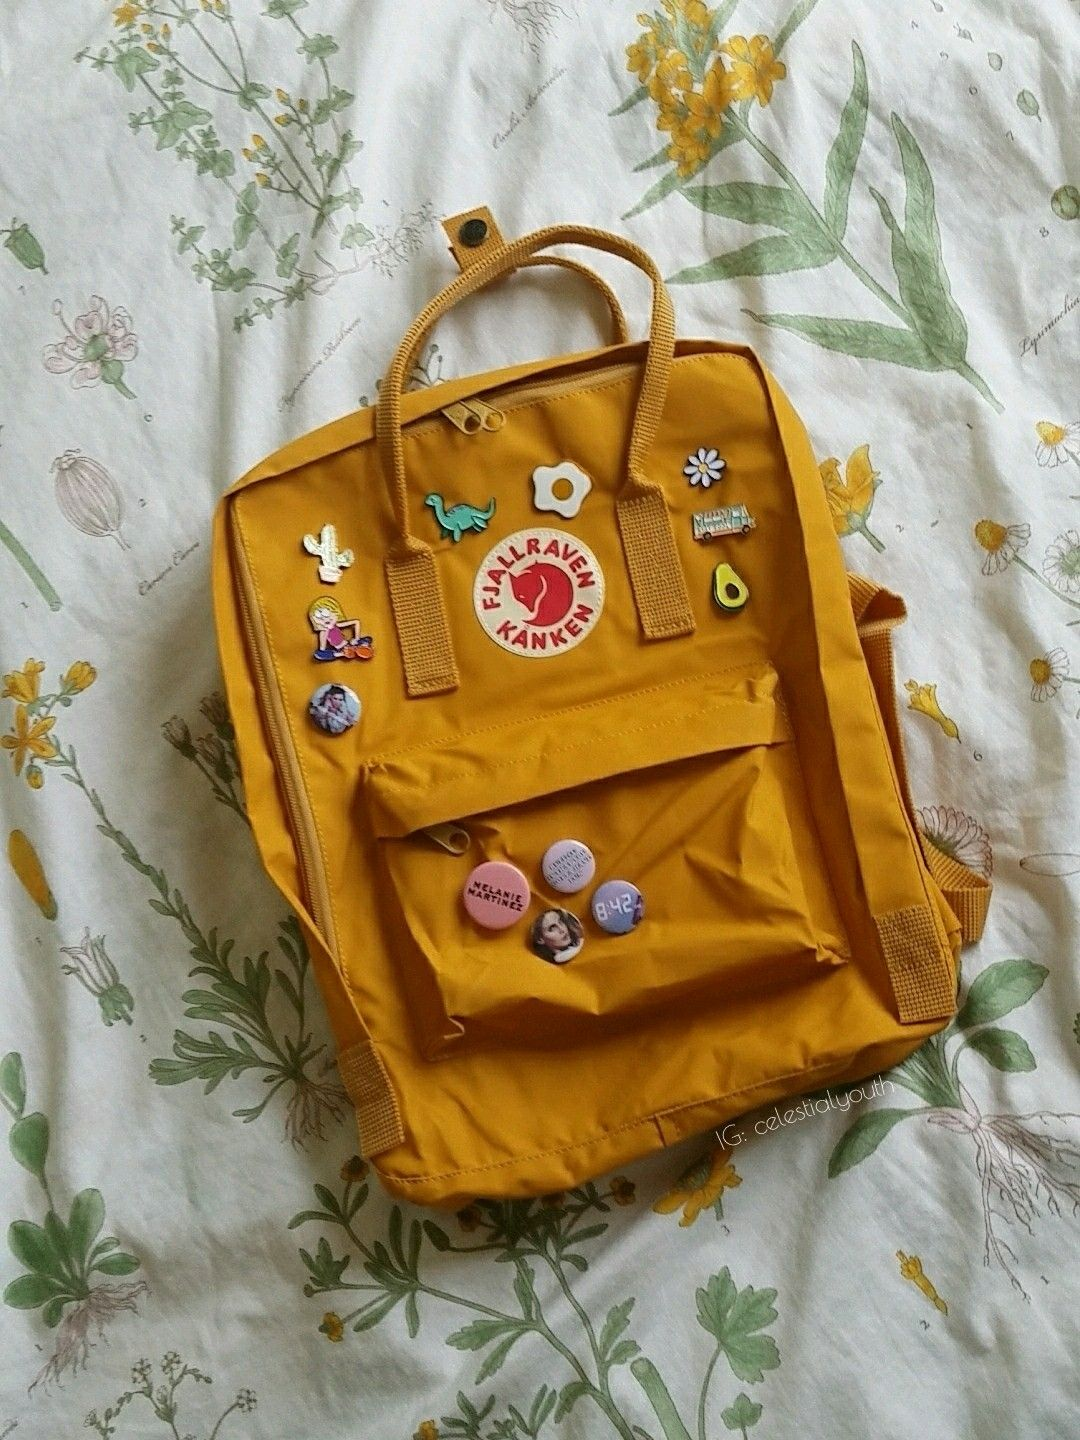 Pin By ♡ Ara ♡ On Soft Pinterest Backpacks Yellow And